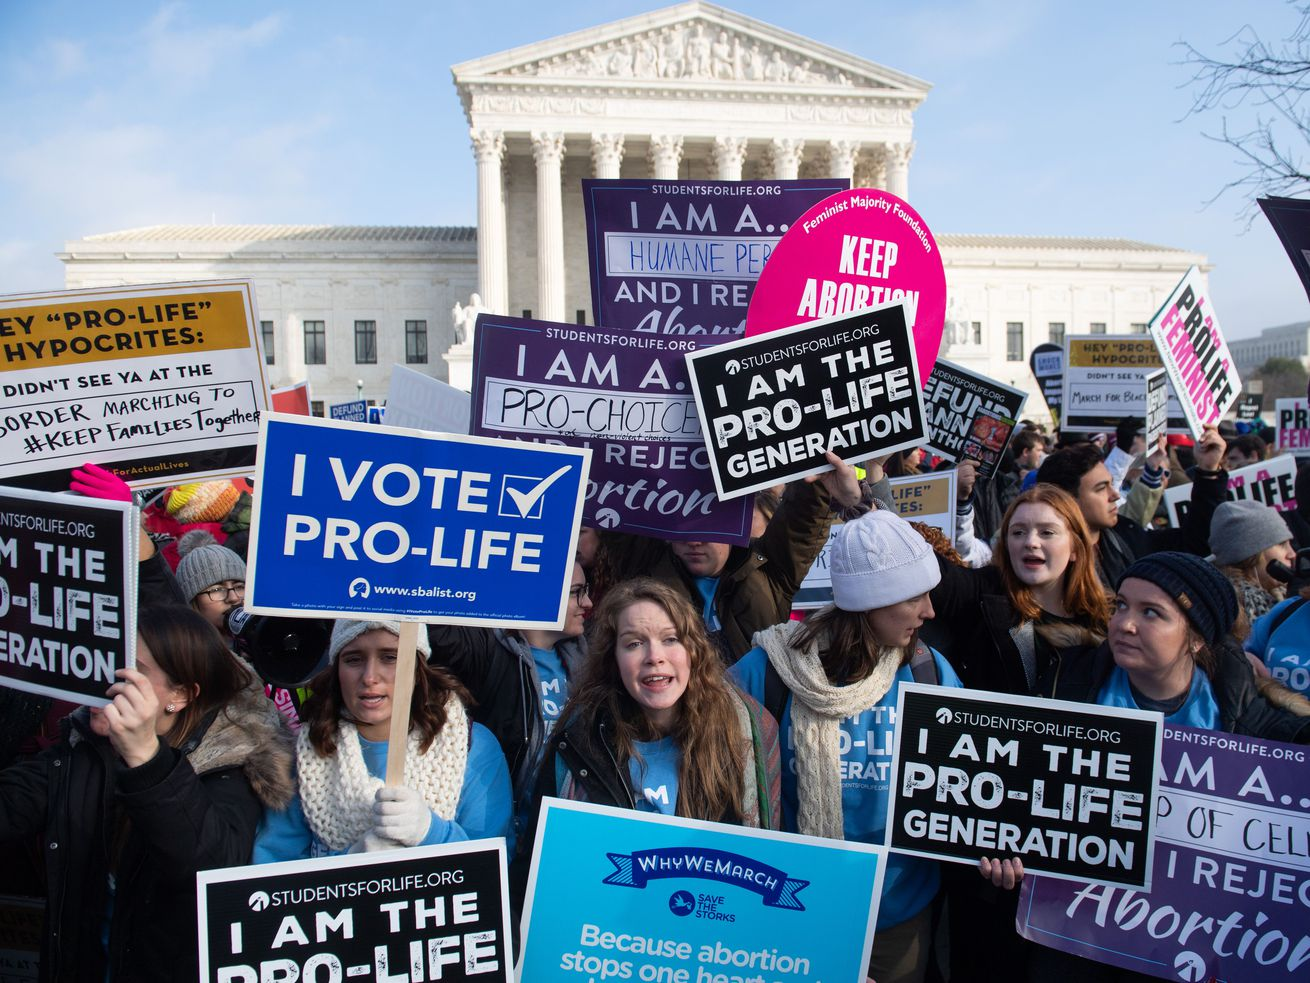 Activists on both sides of the abortion issue protest outside outside the US Supreme Court in Washington, DC, on January 18, 2019.